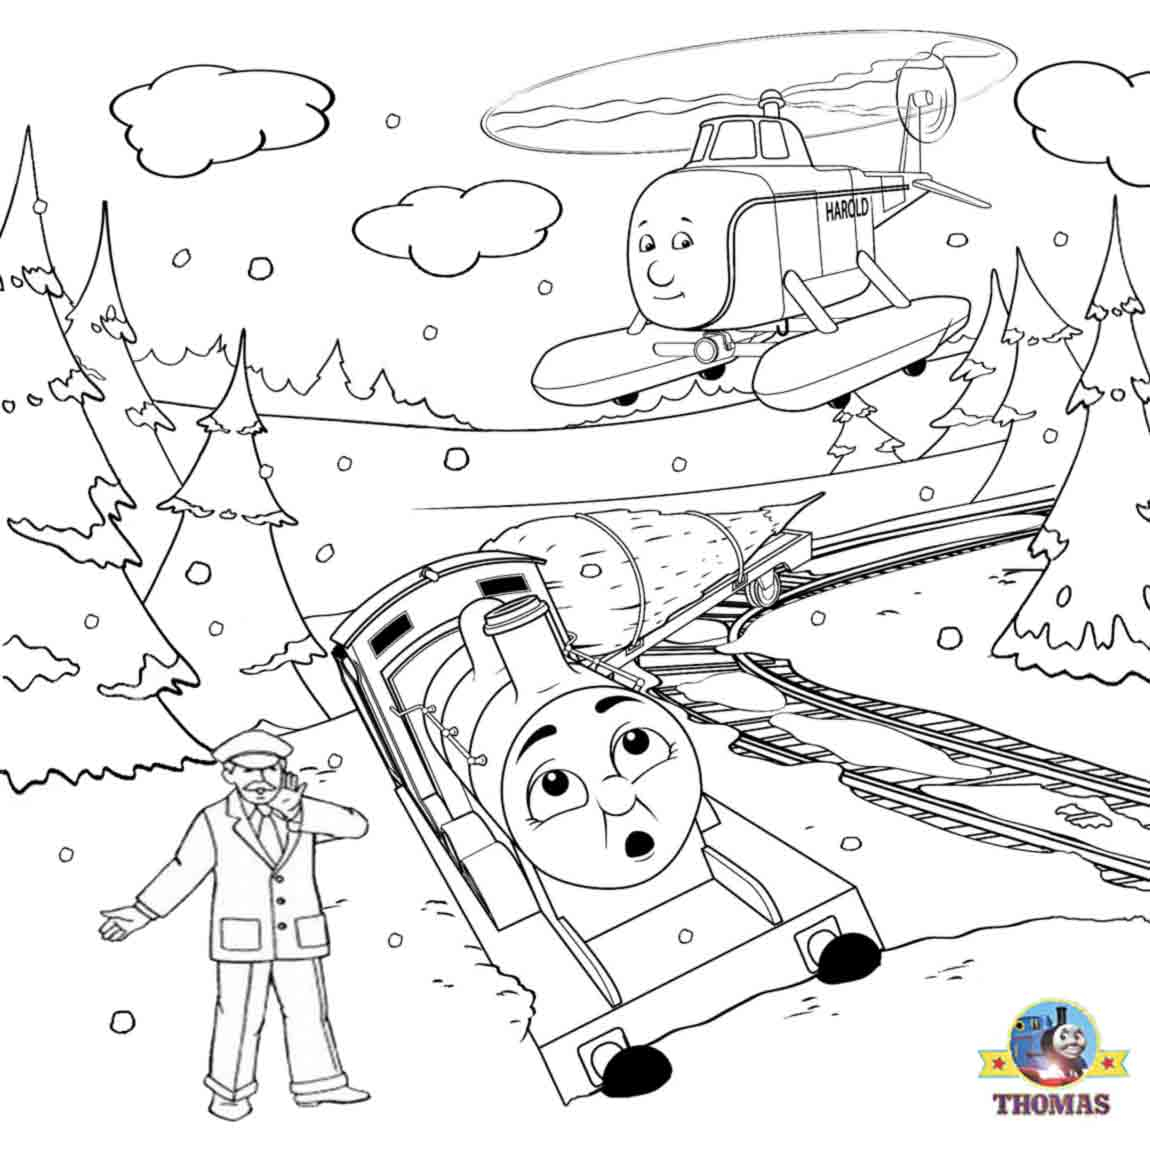 Thomas And Friends Coloring Pages Coloring Pages Thomas And Friends Cool Train Coloring Books Az